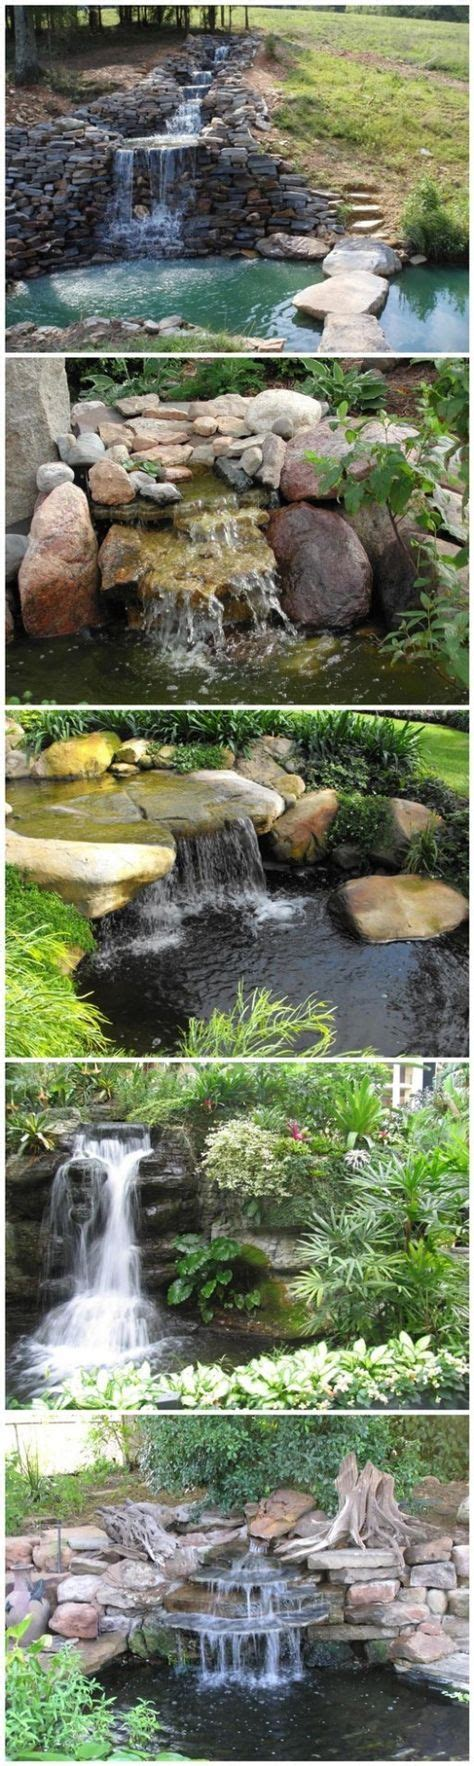 backyard ponds waterfalls pictures 3681 best images about ponds and waterfalls on pinterest